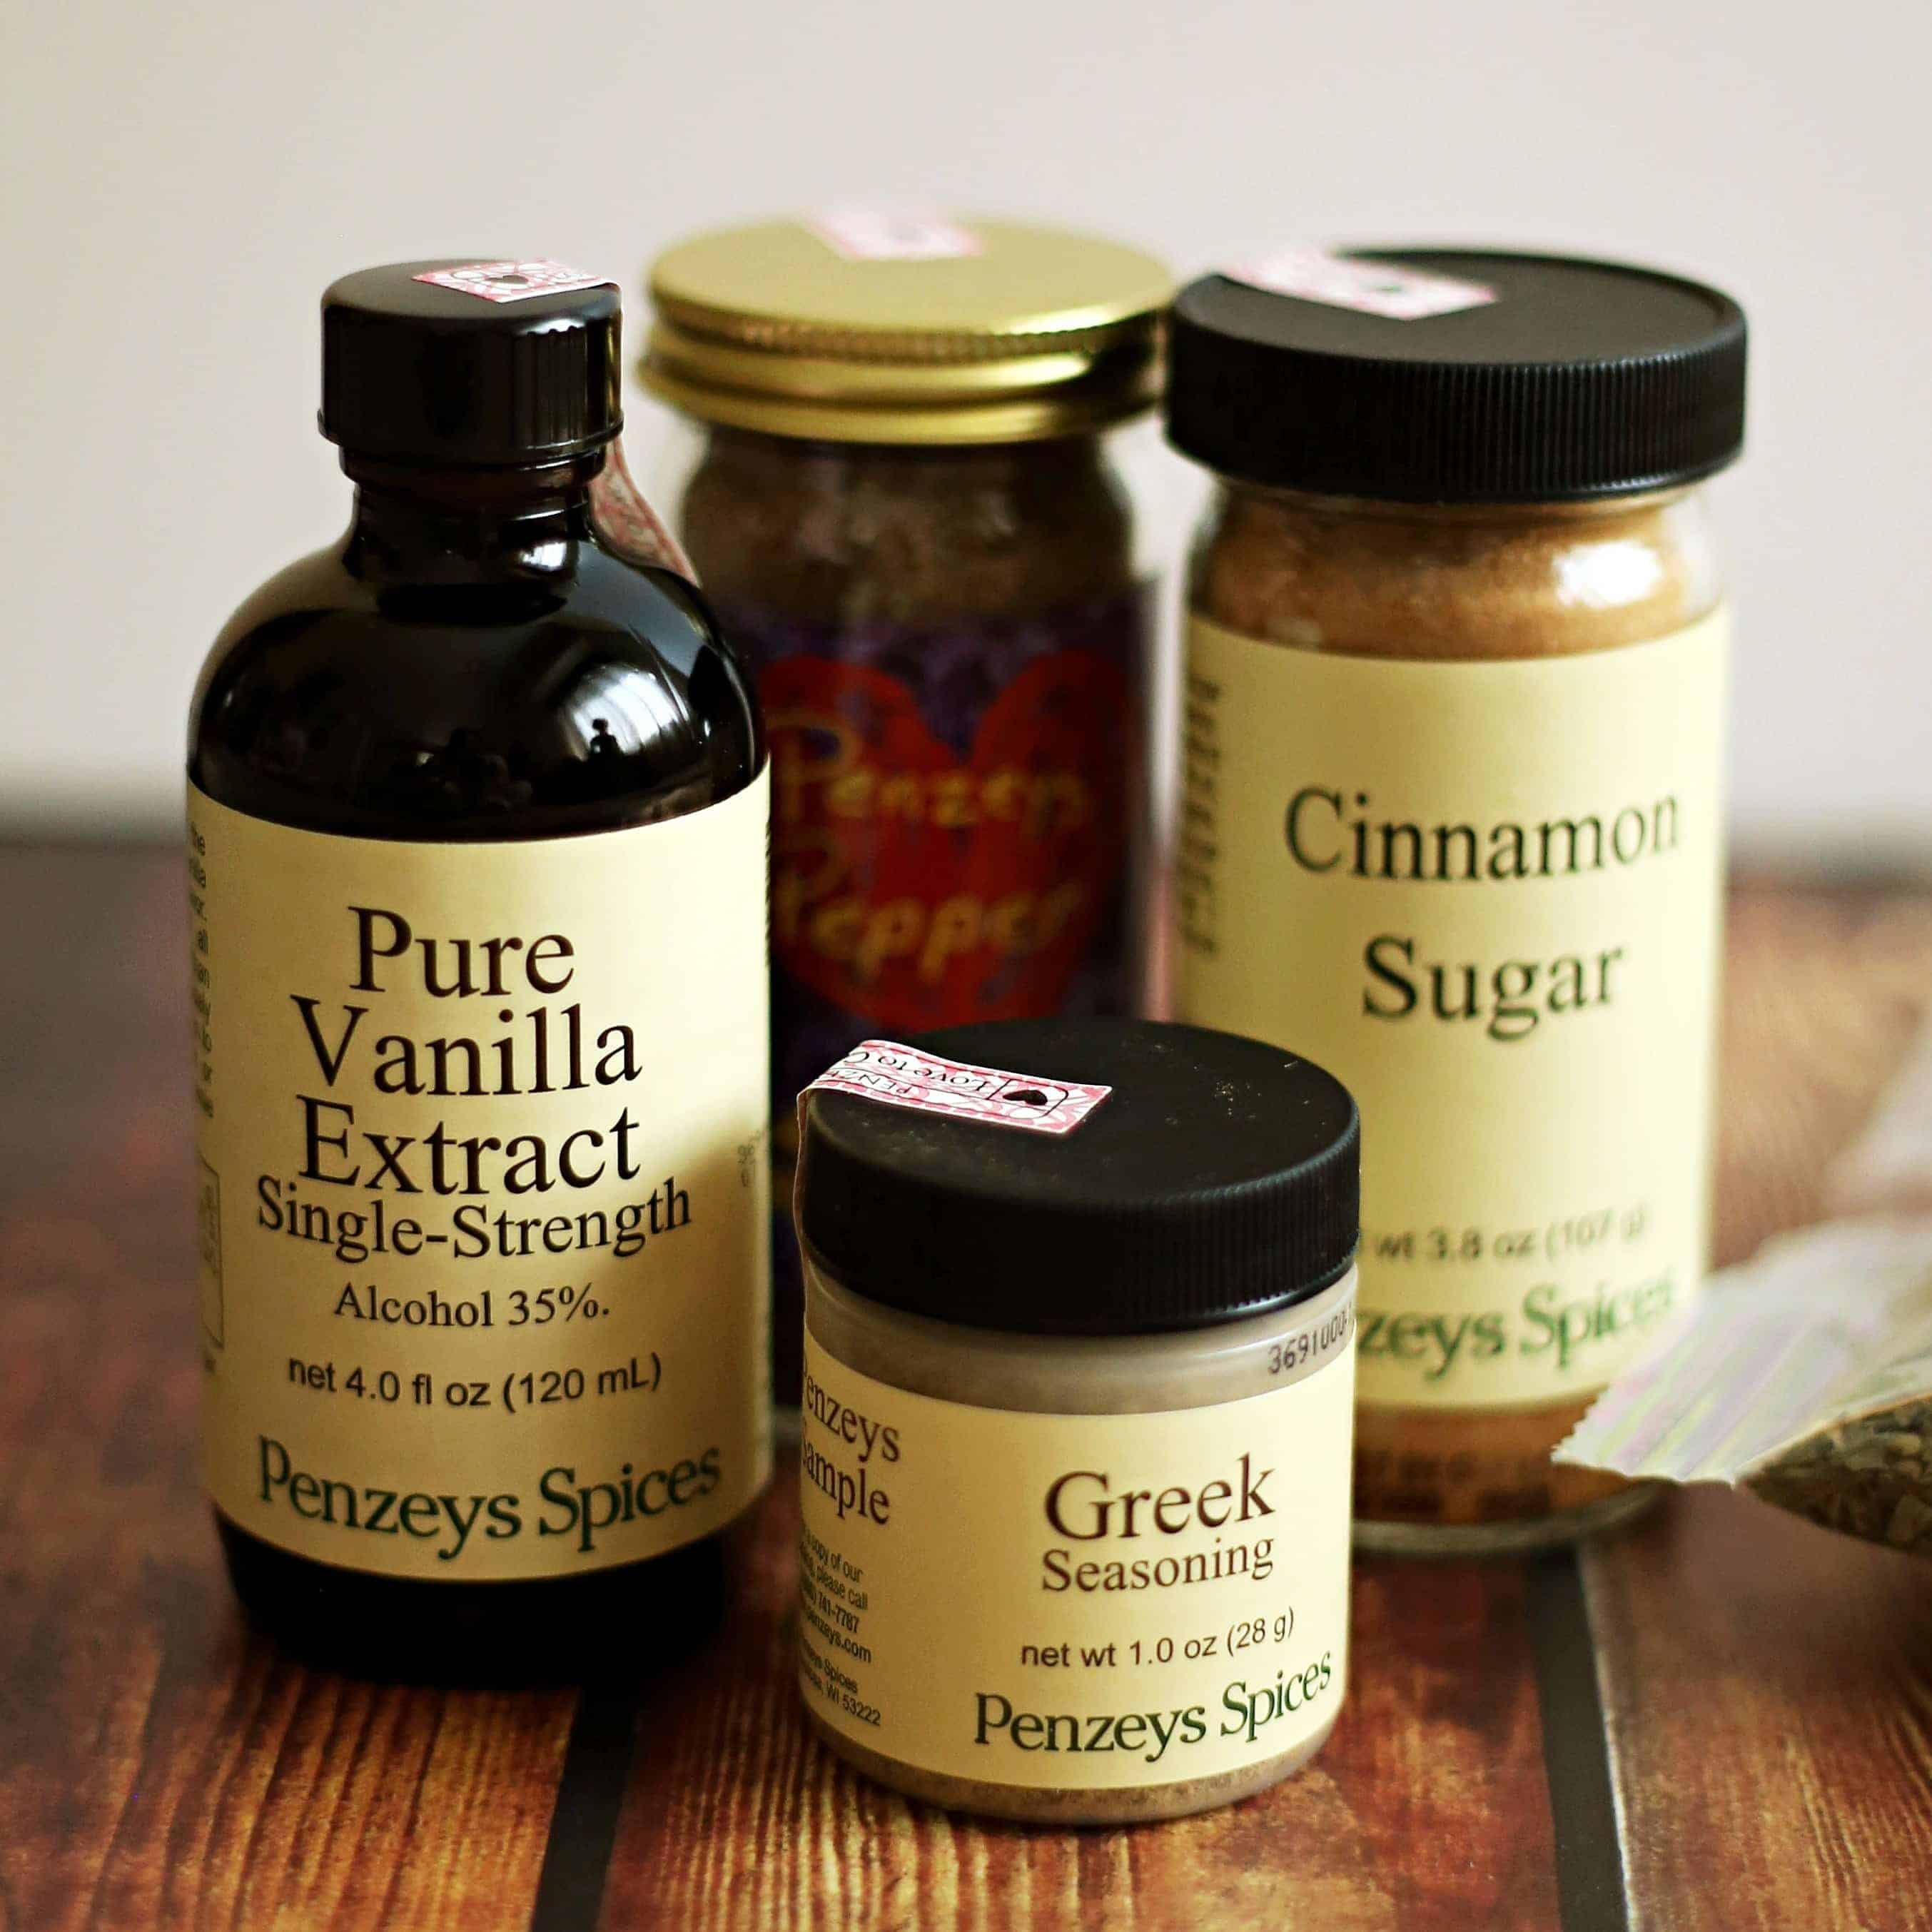 If you love to cook, have you tried Penzeys spices? This is why I love and will only use Penzeys (NON-sponsored)